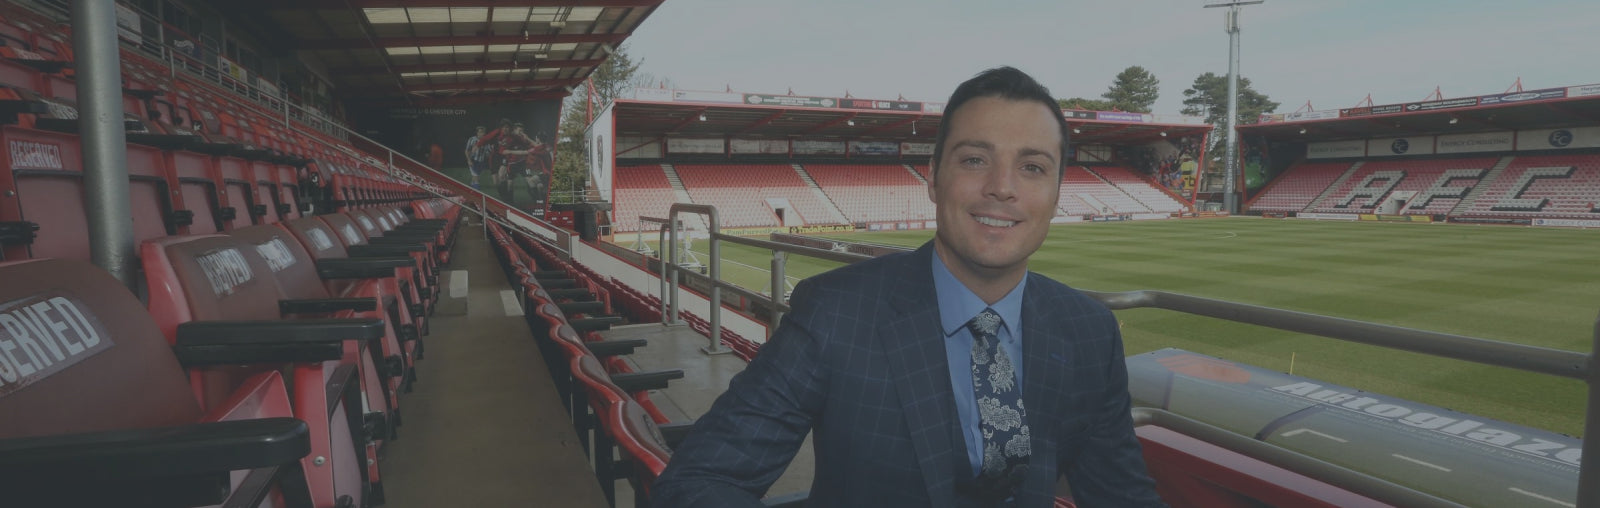 Rob Mitchell, commercial director of AFC bournemouth at Vitality Stadium with testimonial for footballkitsdirect.com